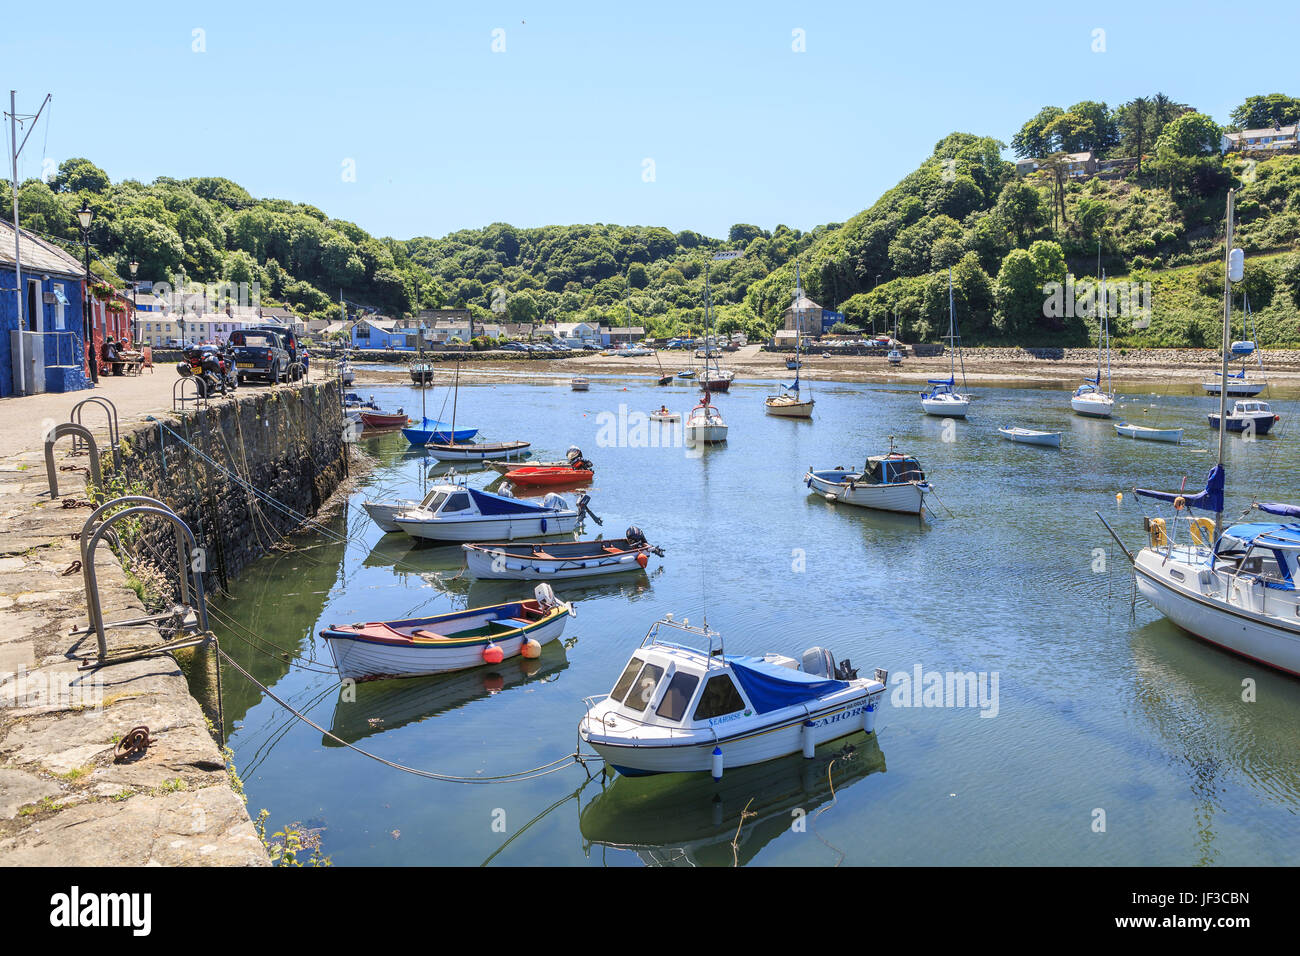 Lower Fishguard harbour, Pembrokeshire, Wales, UK - Stock Image